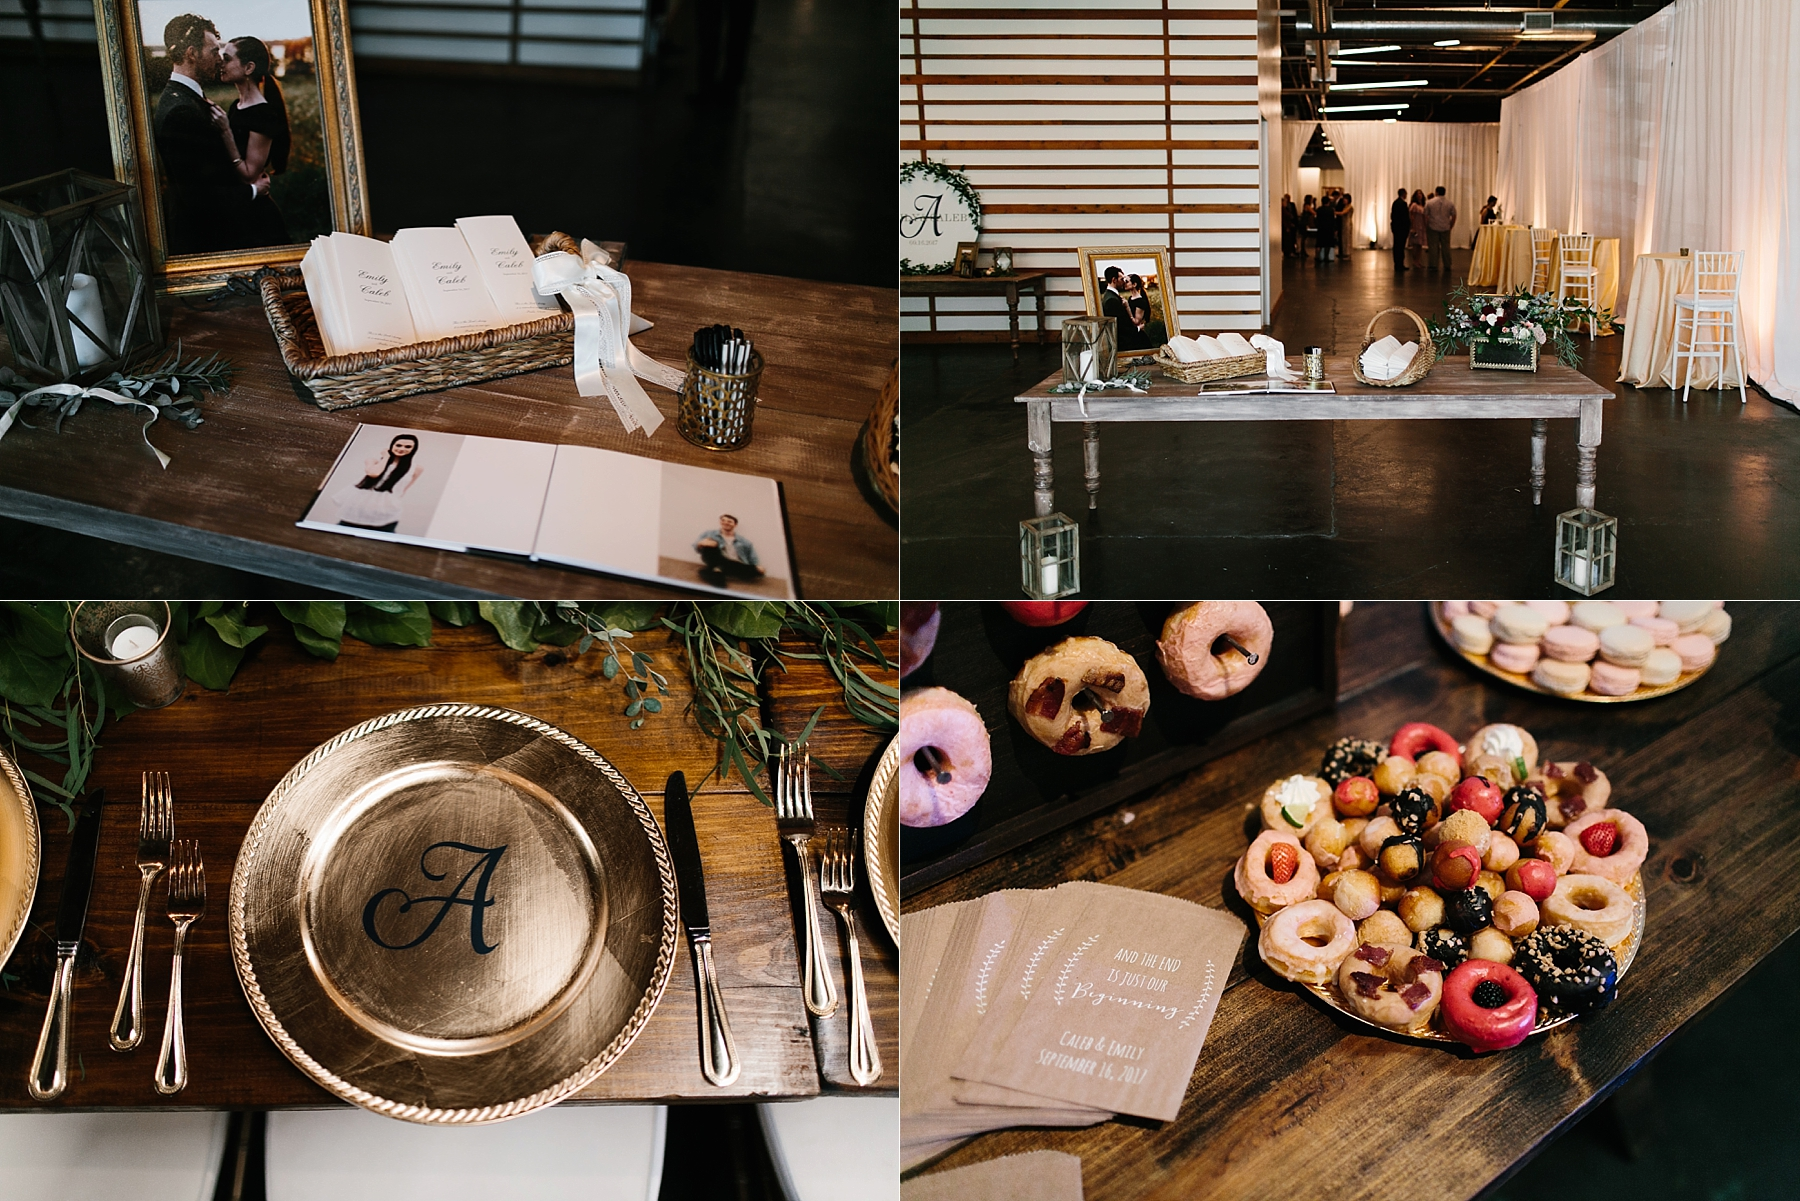 Emily + Caleb _ an elegant, intentional, industrial style wedding with navy + gold accents at 6500 in Dallas, TX by North Texas Wedding Photographer Rachel Meagan Photography _ 072